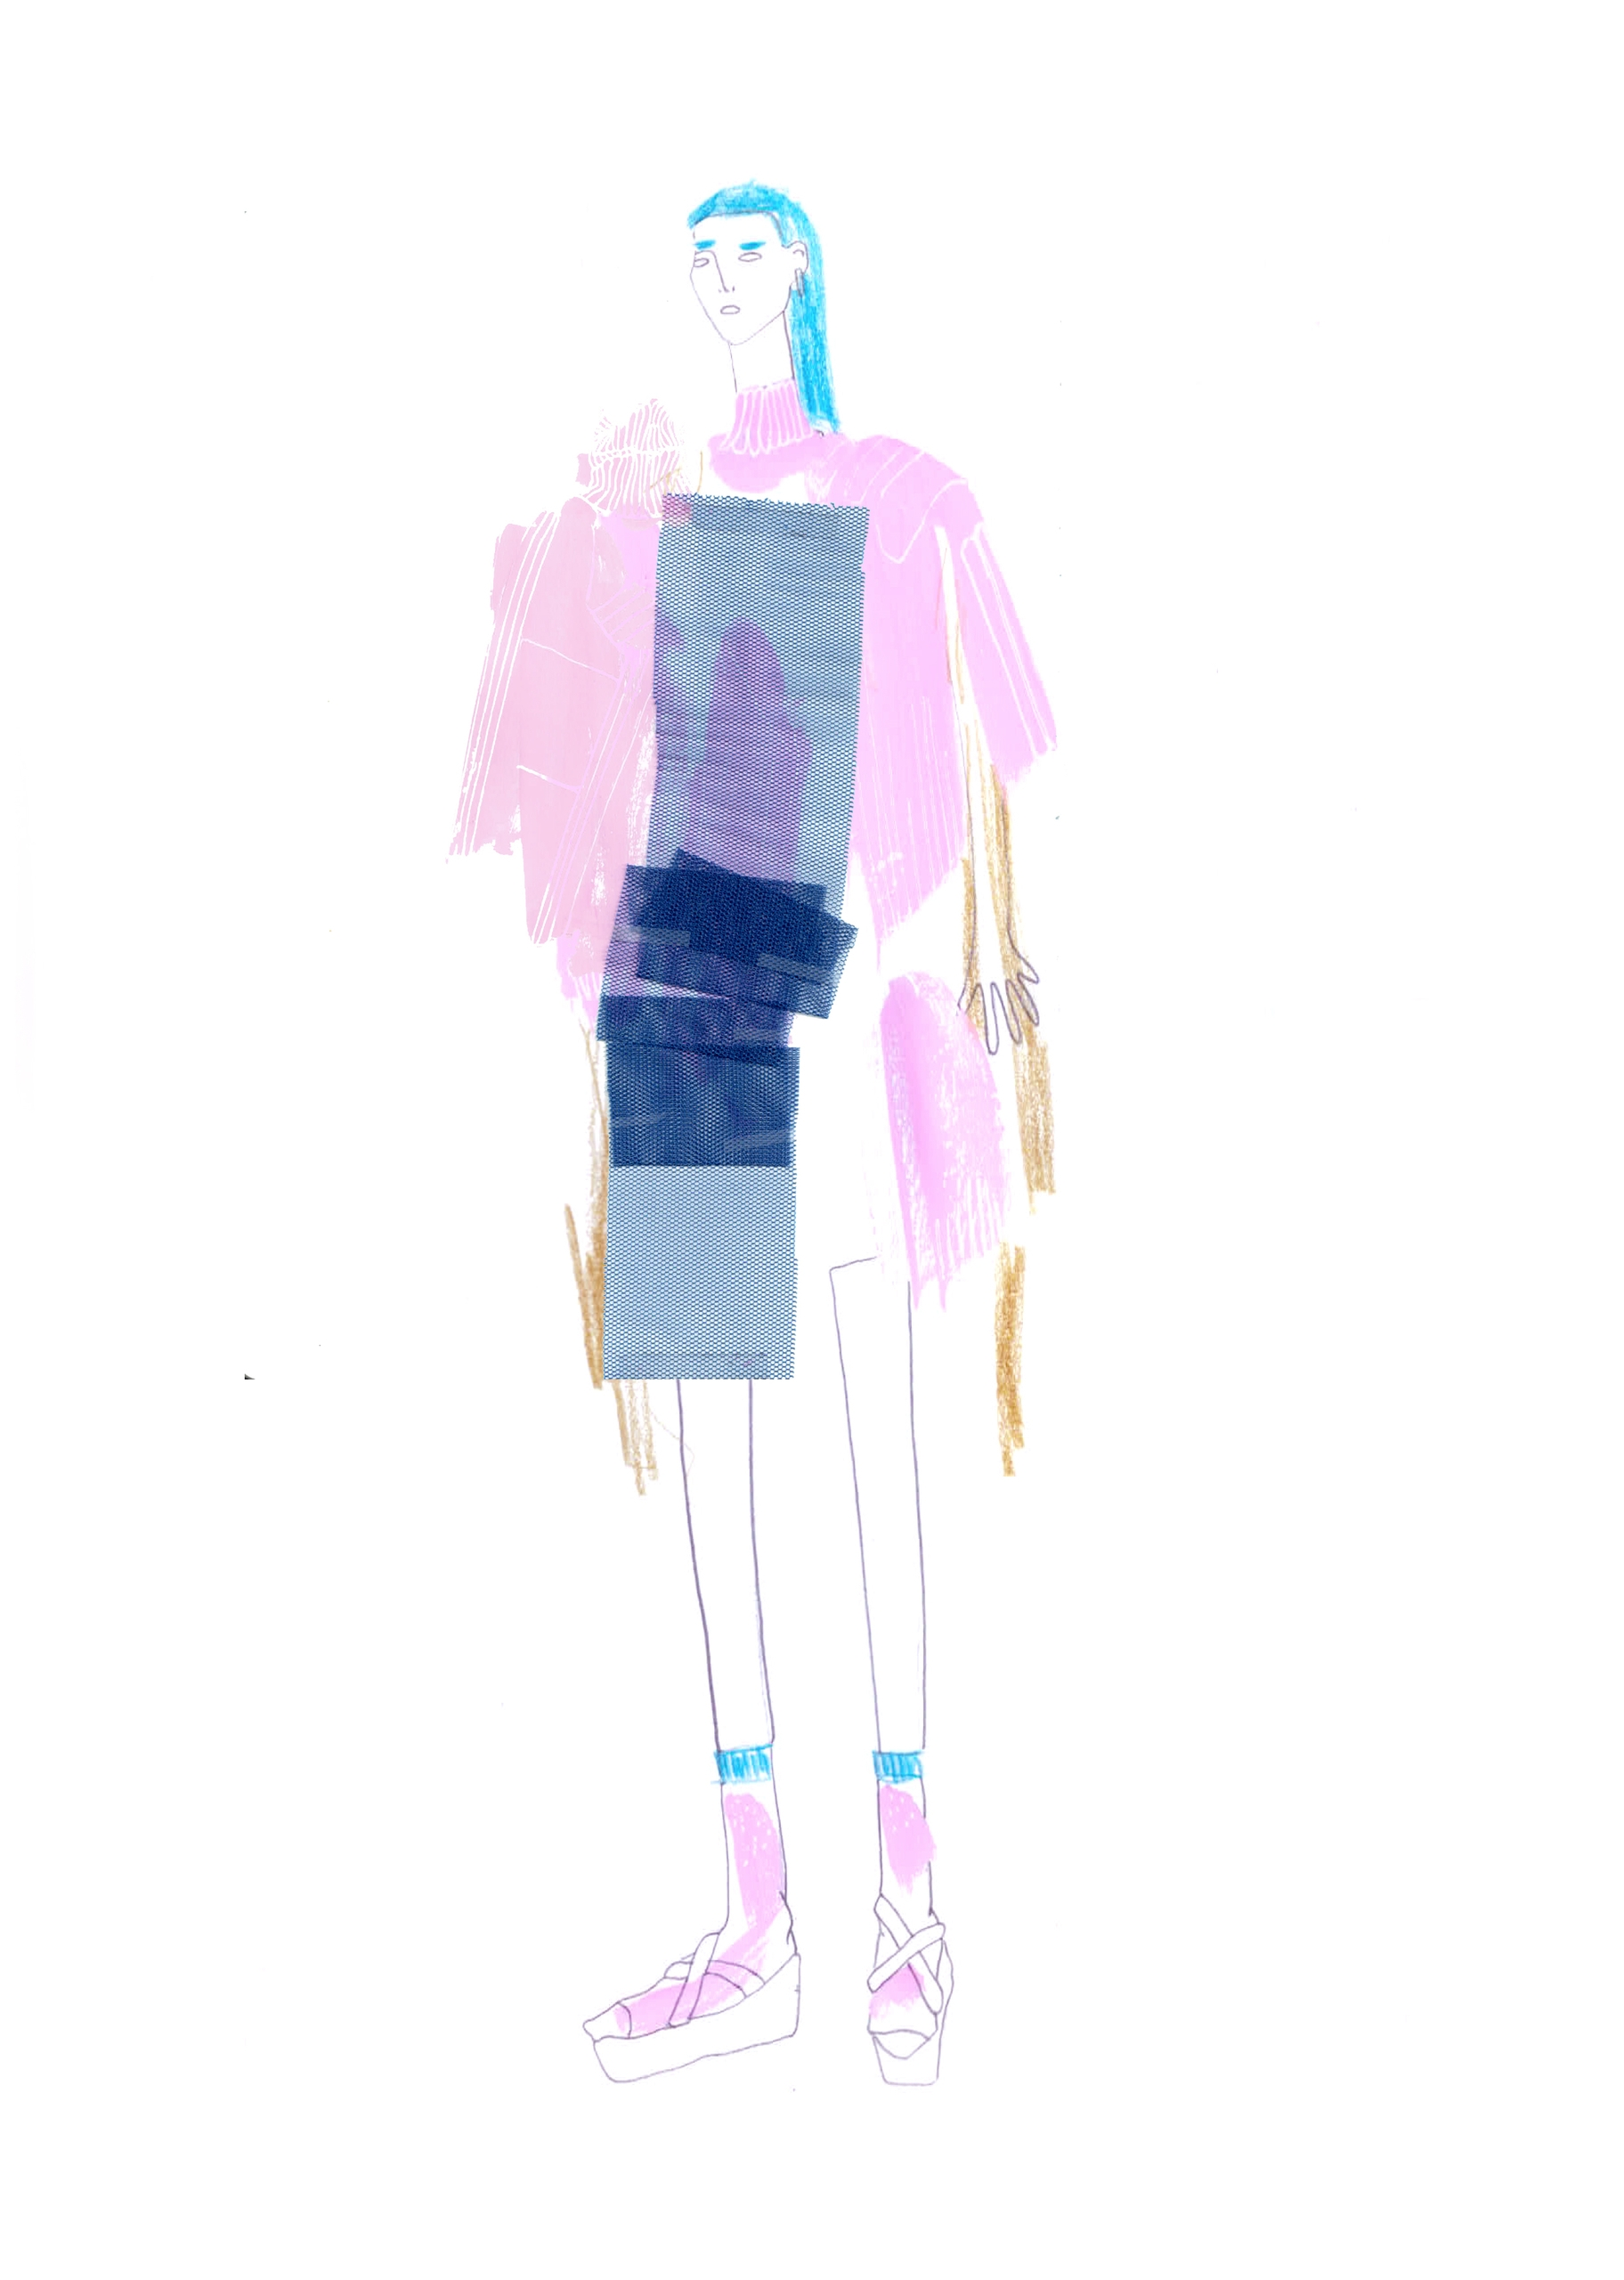 fashion moi - illustration - ch-url | ello